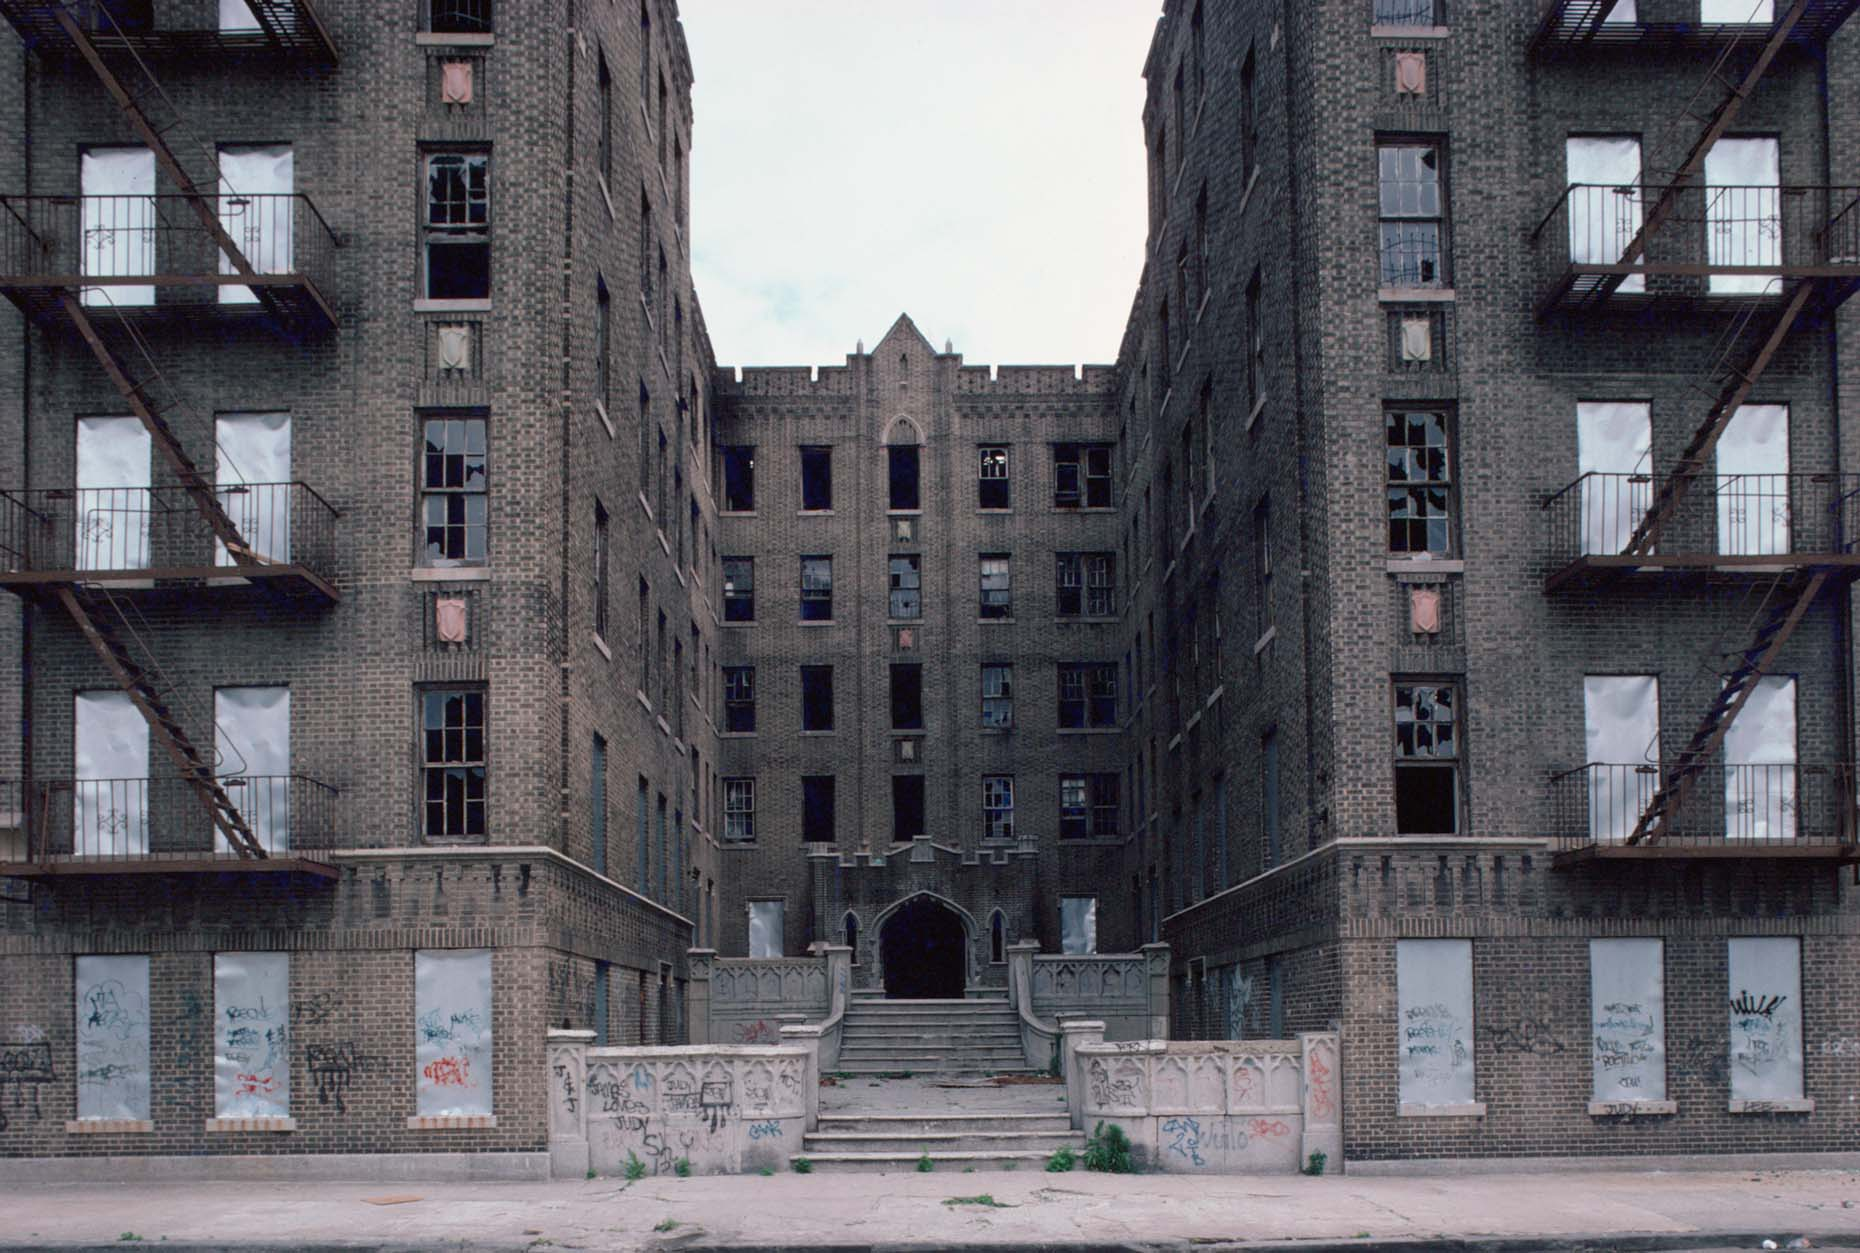 02_Vyse Ave at East 178th St, Bronx, N Y, June 1982-DUP.jpg